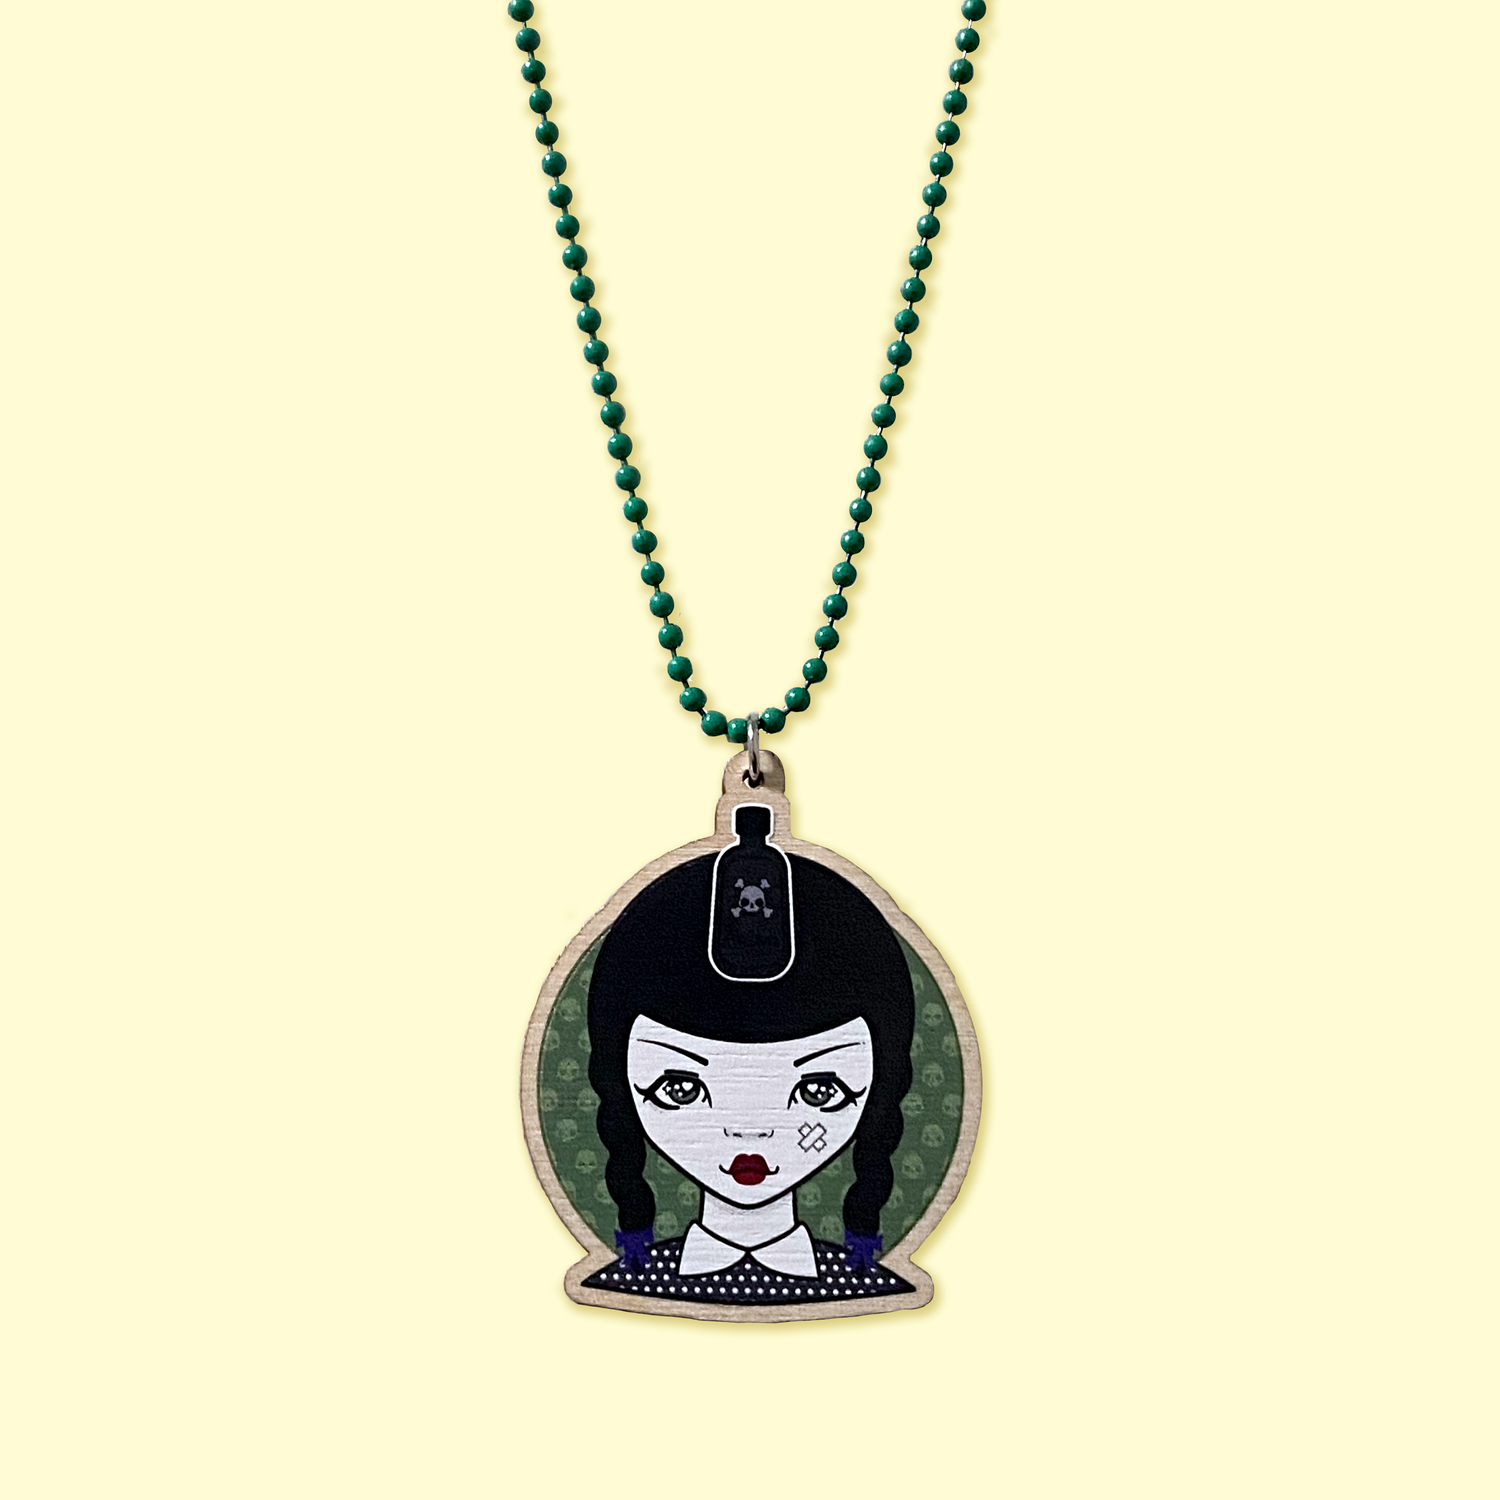 Image of Wednesday Addams x Katsola Wood Charm Necklace